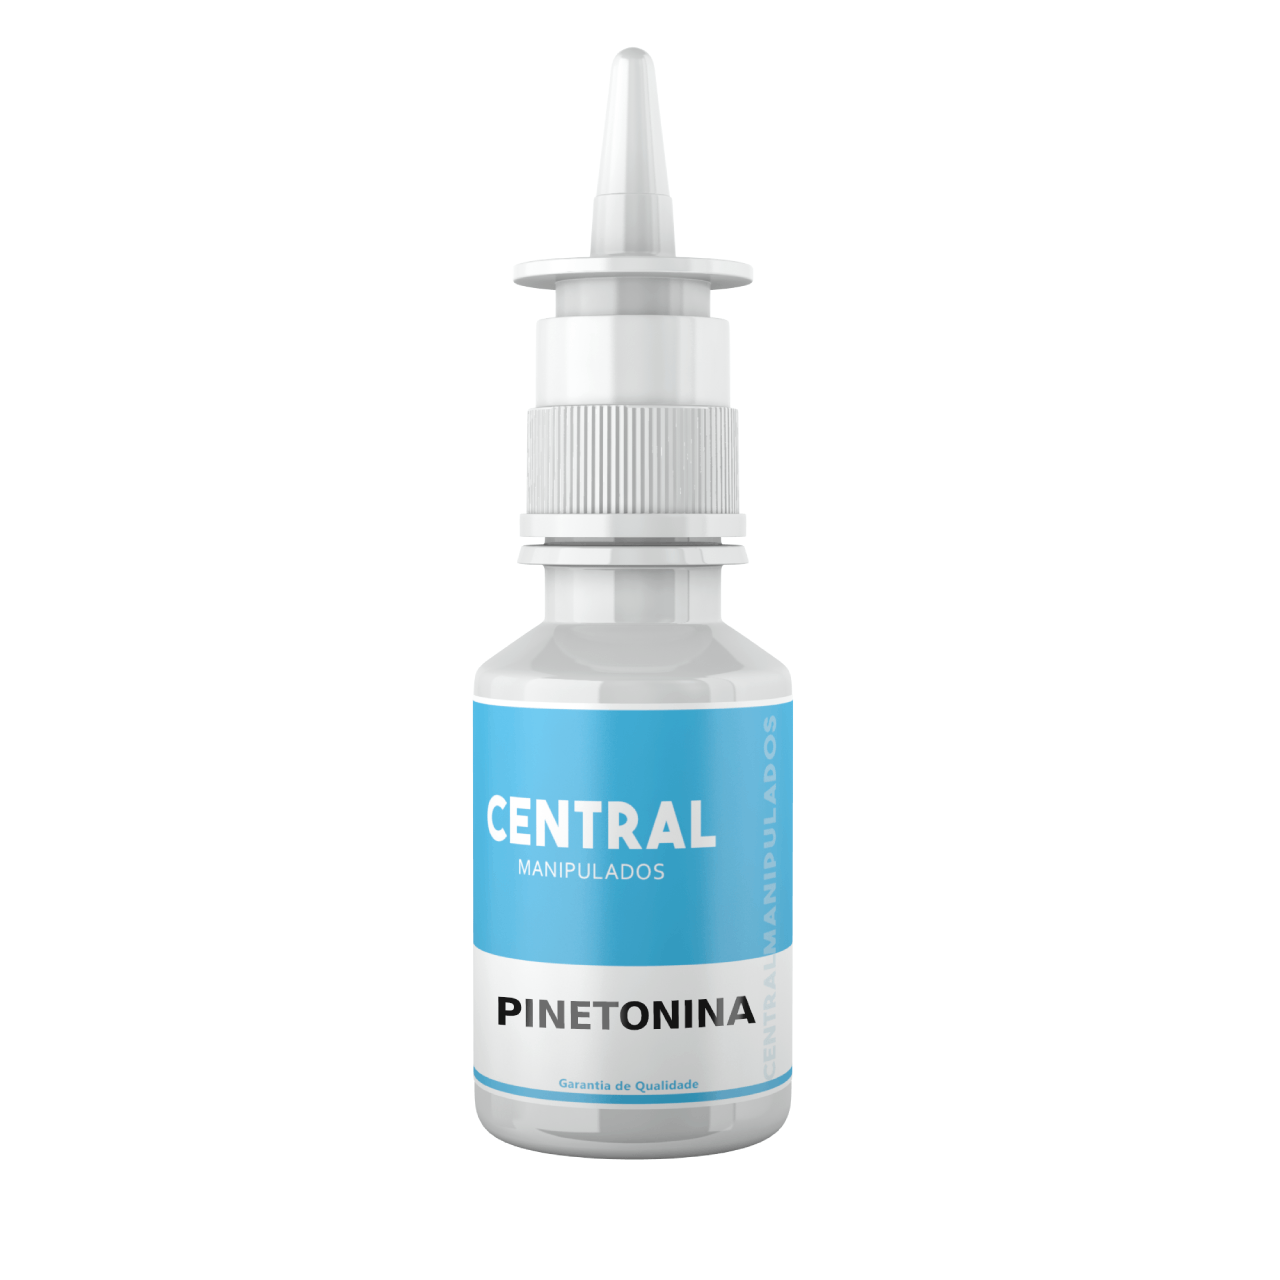 Pinetonina® 30% - Spray Uso Nasal - 30ml